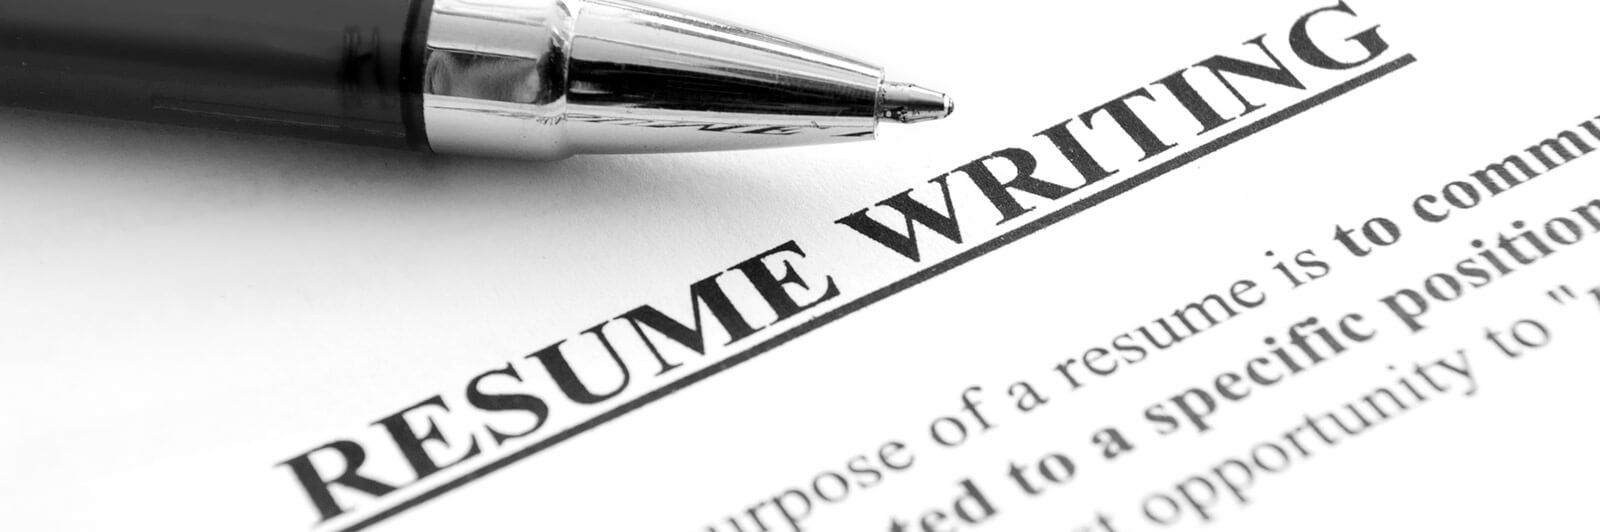 Resume writing services by professional resume writing experts